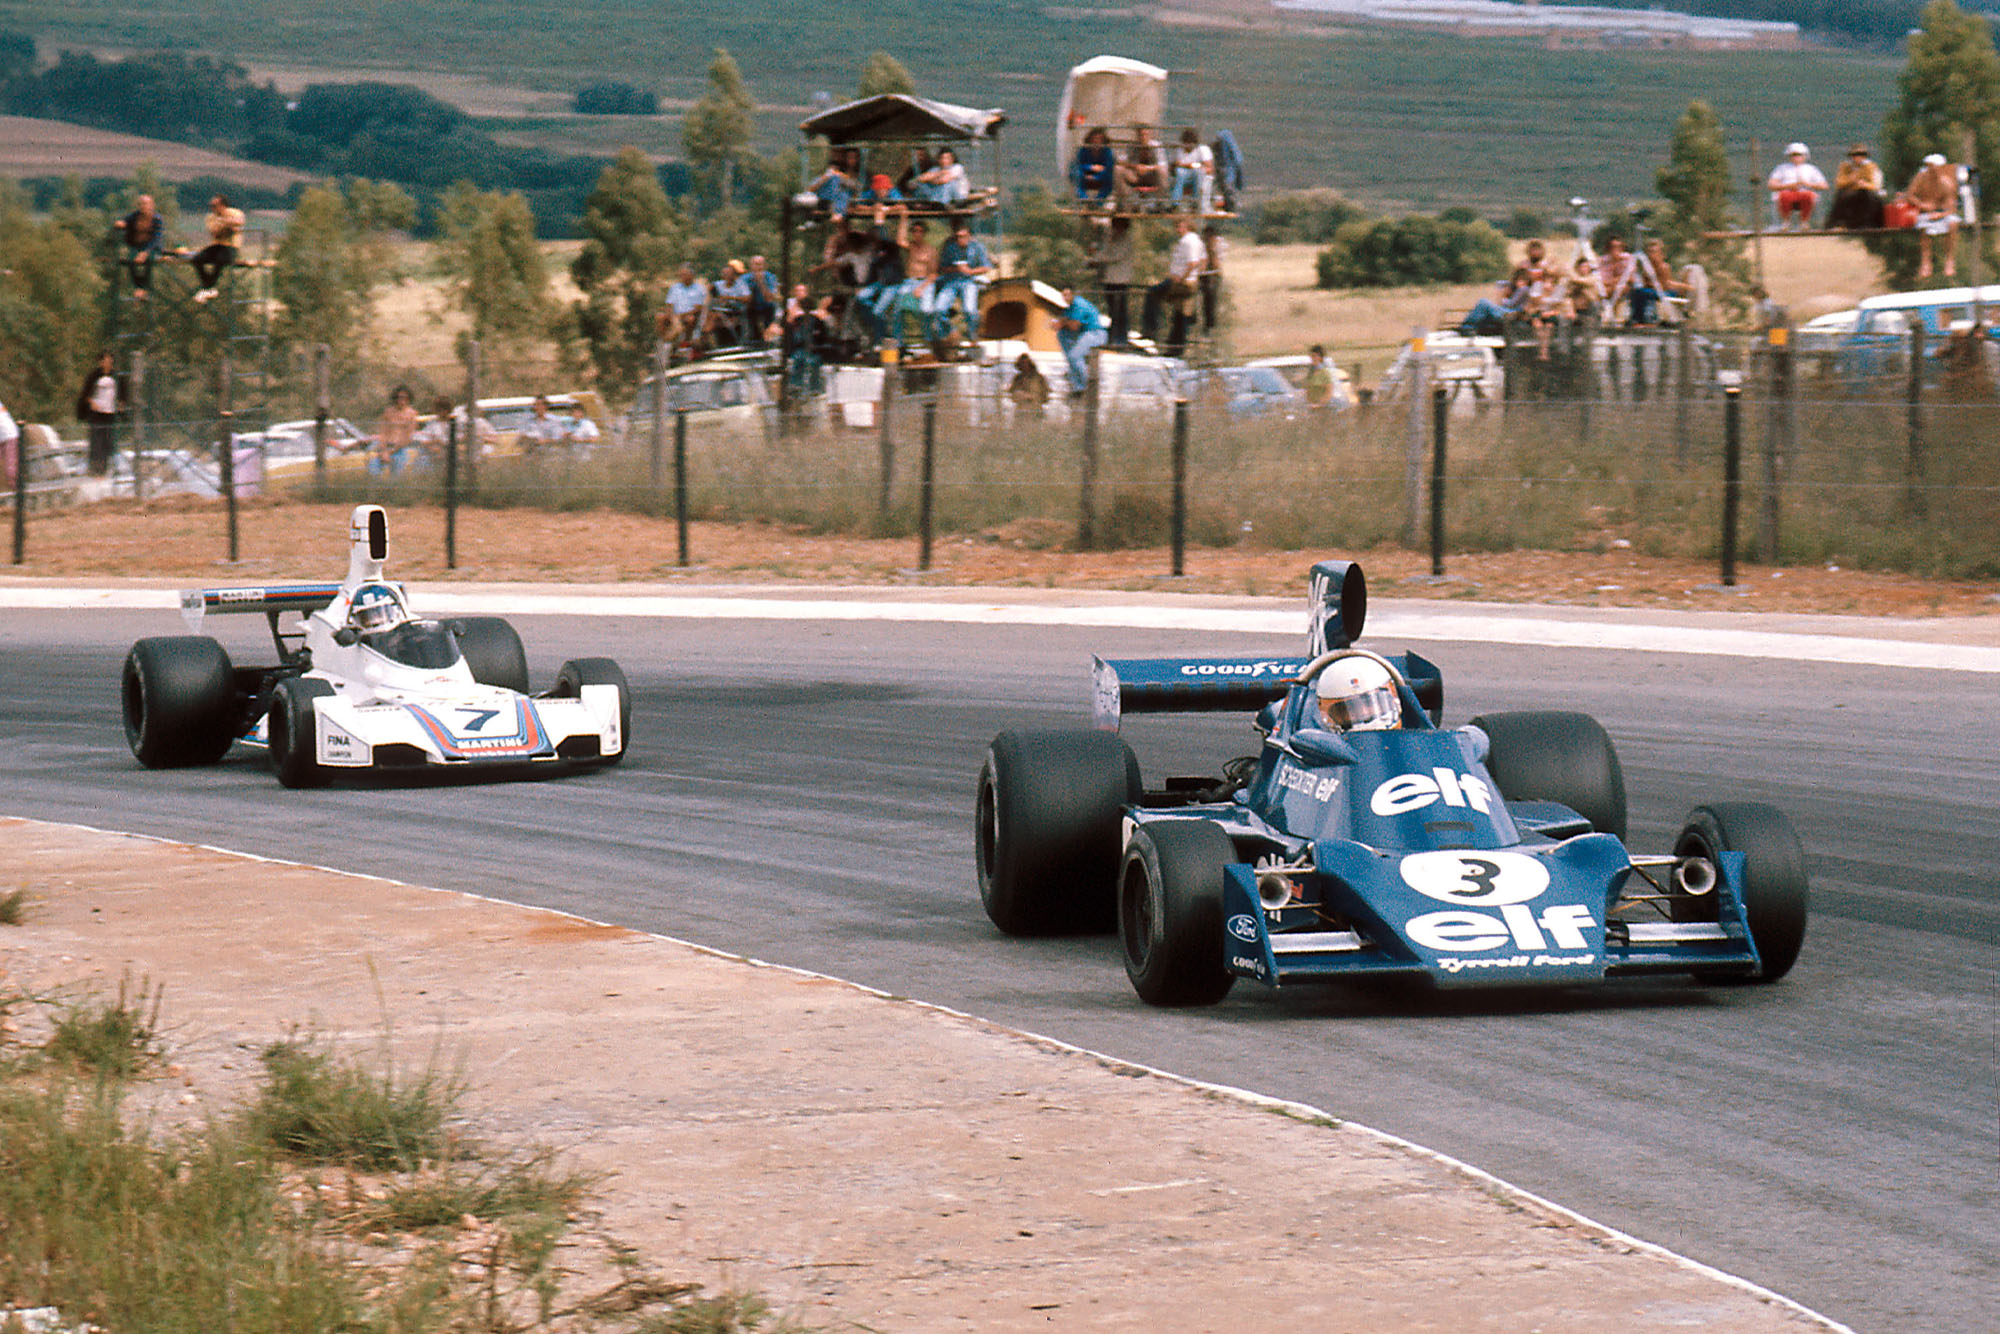 Jody Scheckter (Tyrrell) is chased By Carlos Pace (Brabham) at the 1975 South African Grand Prix, Kyalami.